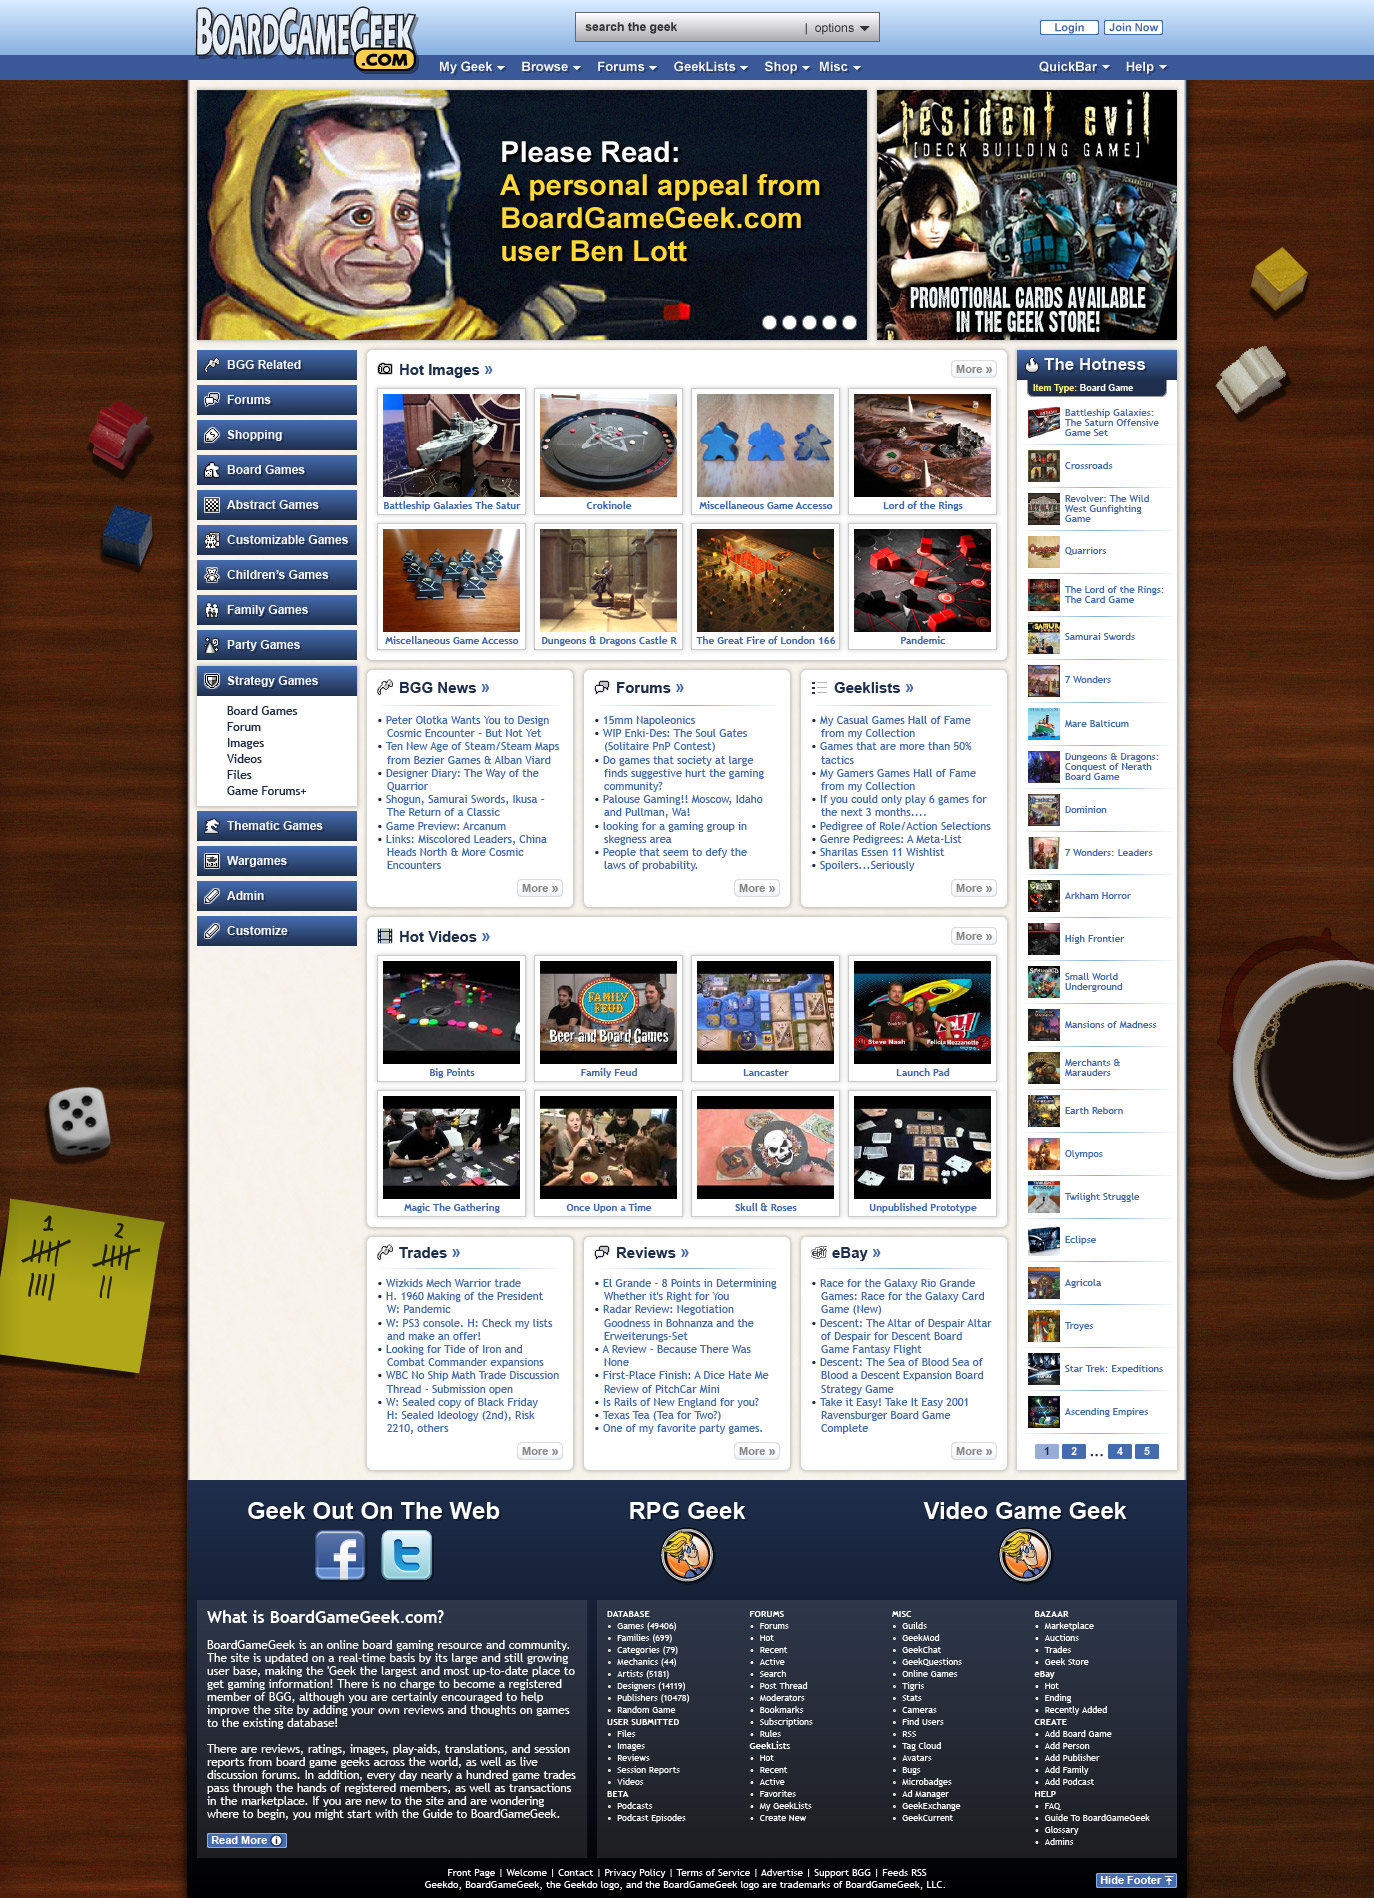 BoardGameGeek_Home_Page_Comp3-cropped